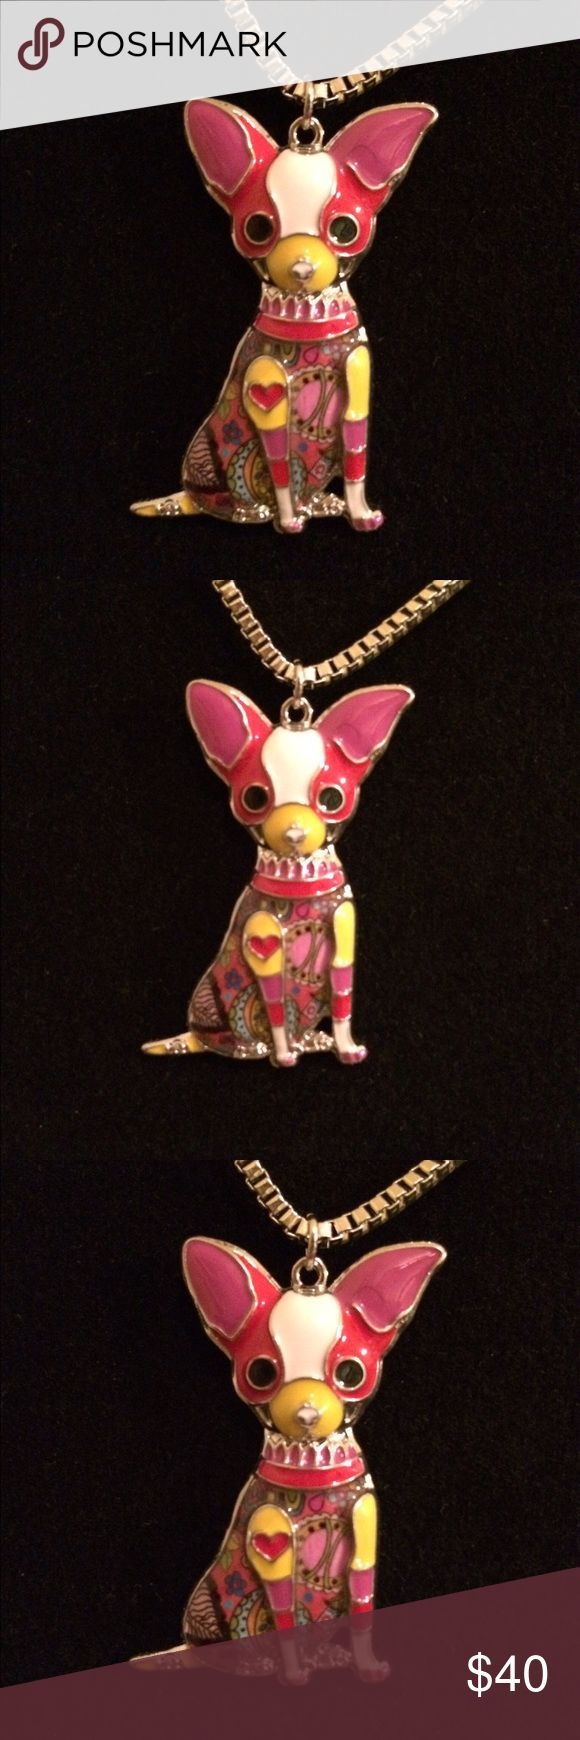 STATEMENT ENAMEL JEWELRY CHIHUAHUAS DOG NECKLACE Maxi Statement Enamel Jewelry Chihuahuas Dog Necklace & Pendant. Fashion. New. Woman. Red. Necklace 20 inches. Extender 3 inches.  Necklace is Silver. Backing & Outline are Silver. Jewelry Necklaces